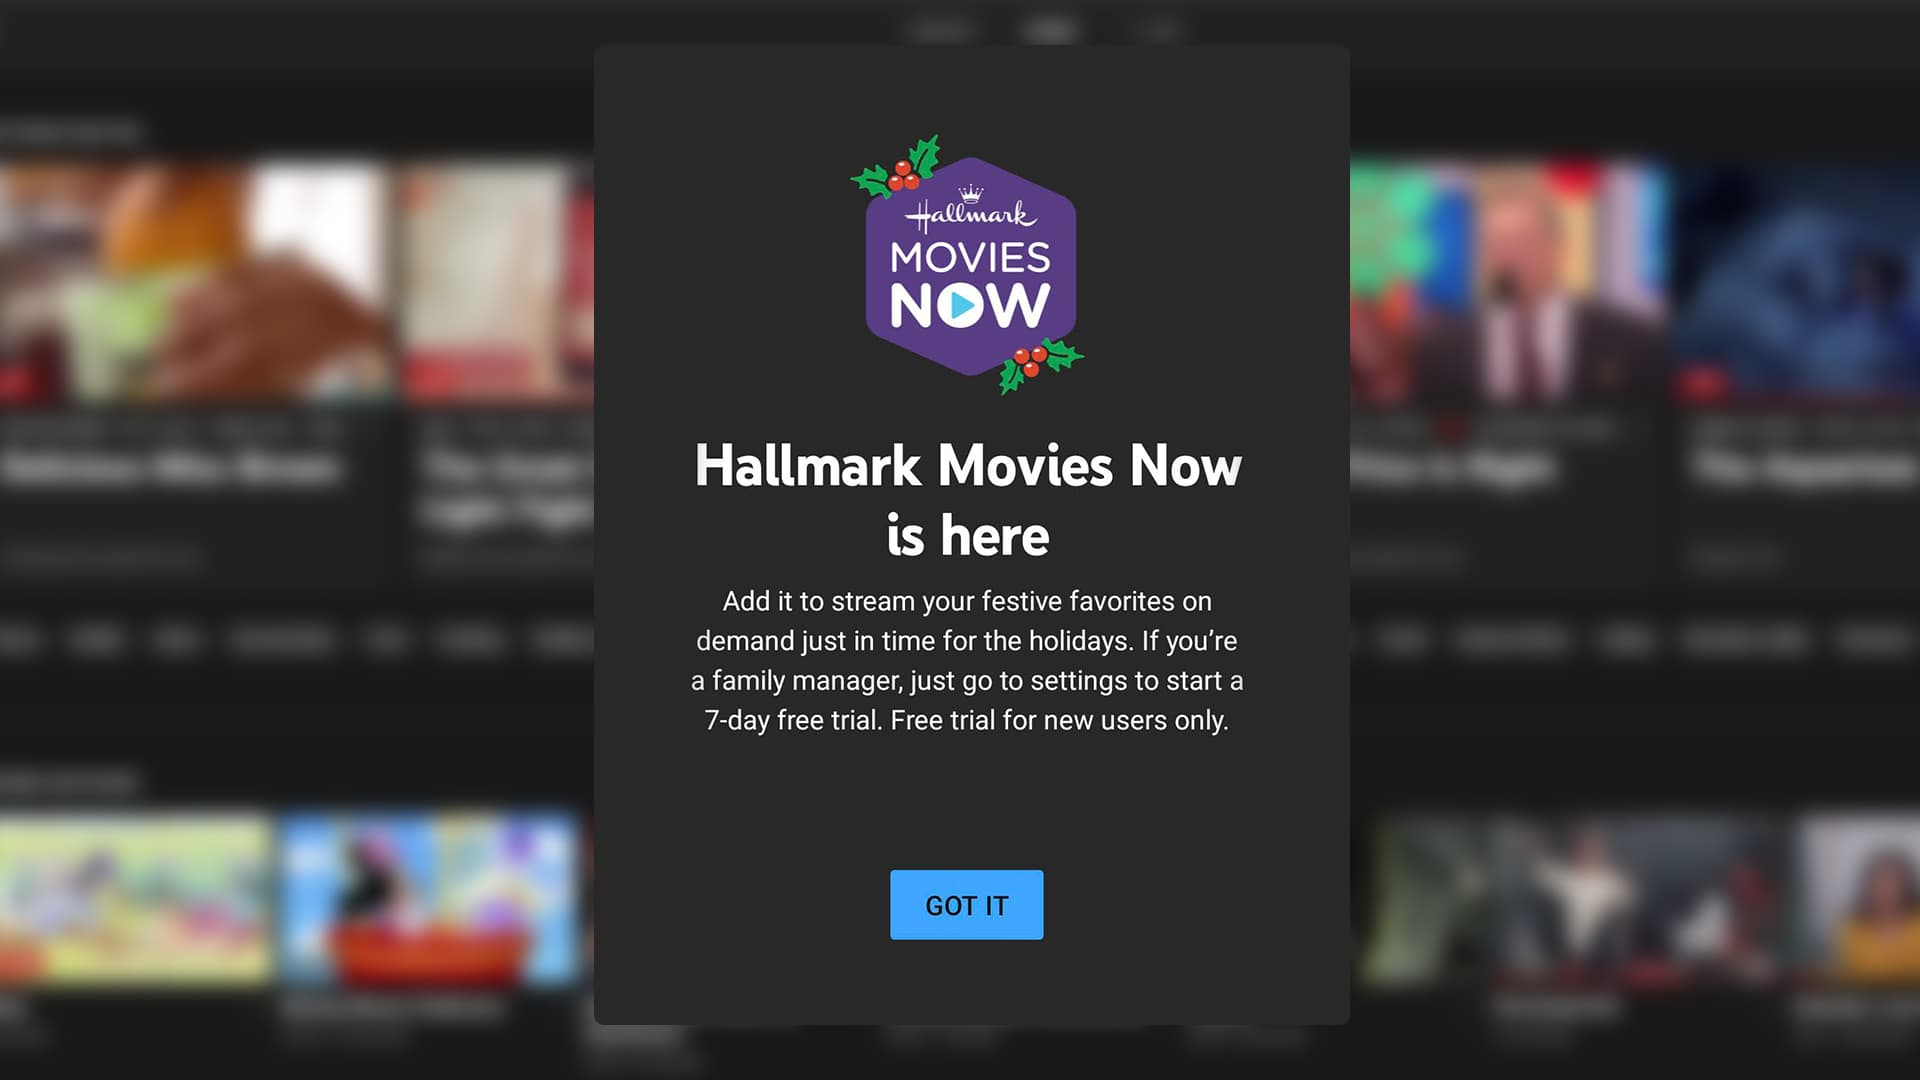 Hallmark Movies Now Comes To Youtube Tv With A Free Trial Just In Time For The Holidays